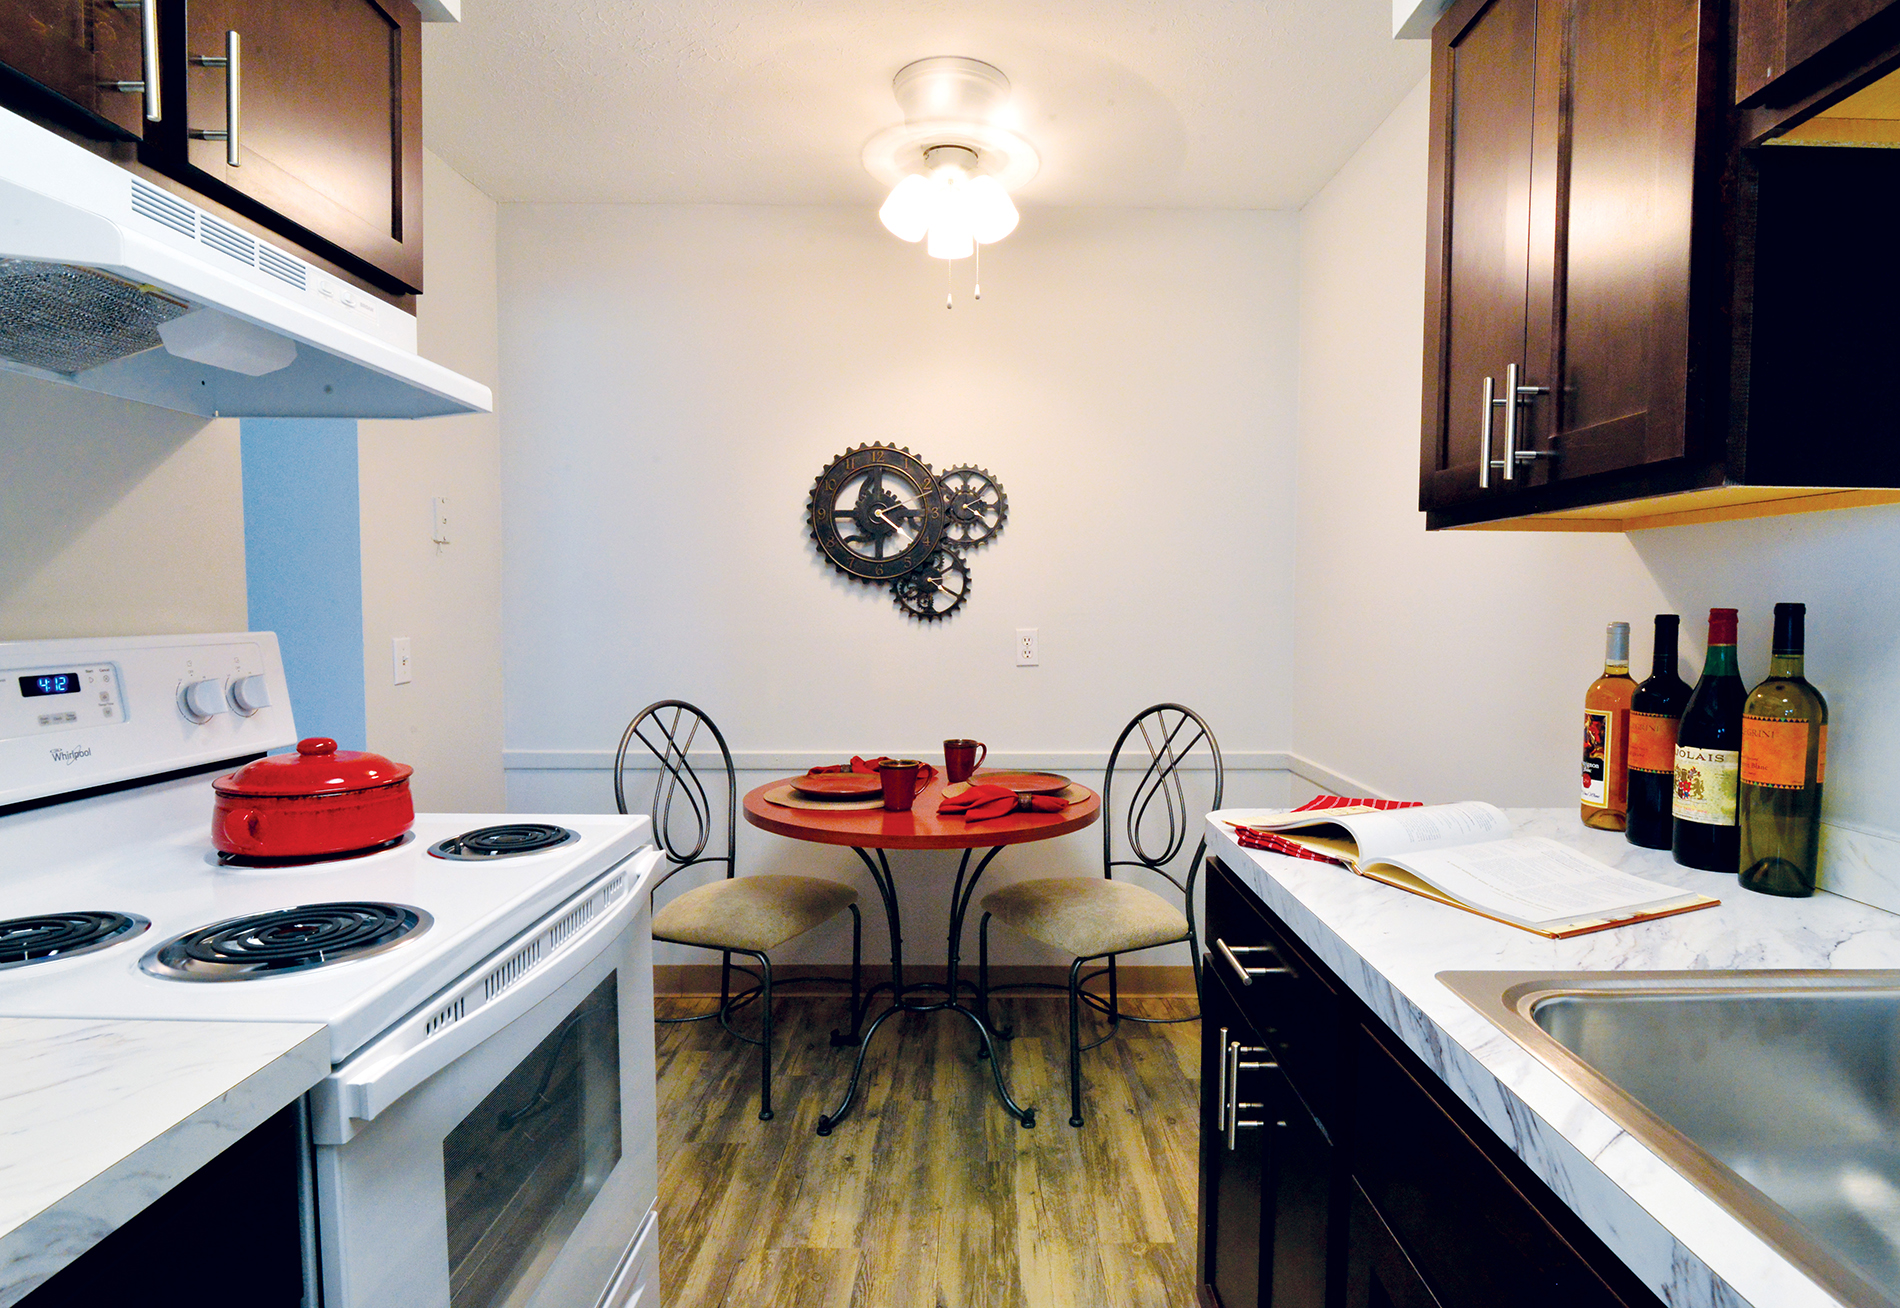 A kitchen in an apartment unit